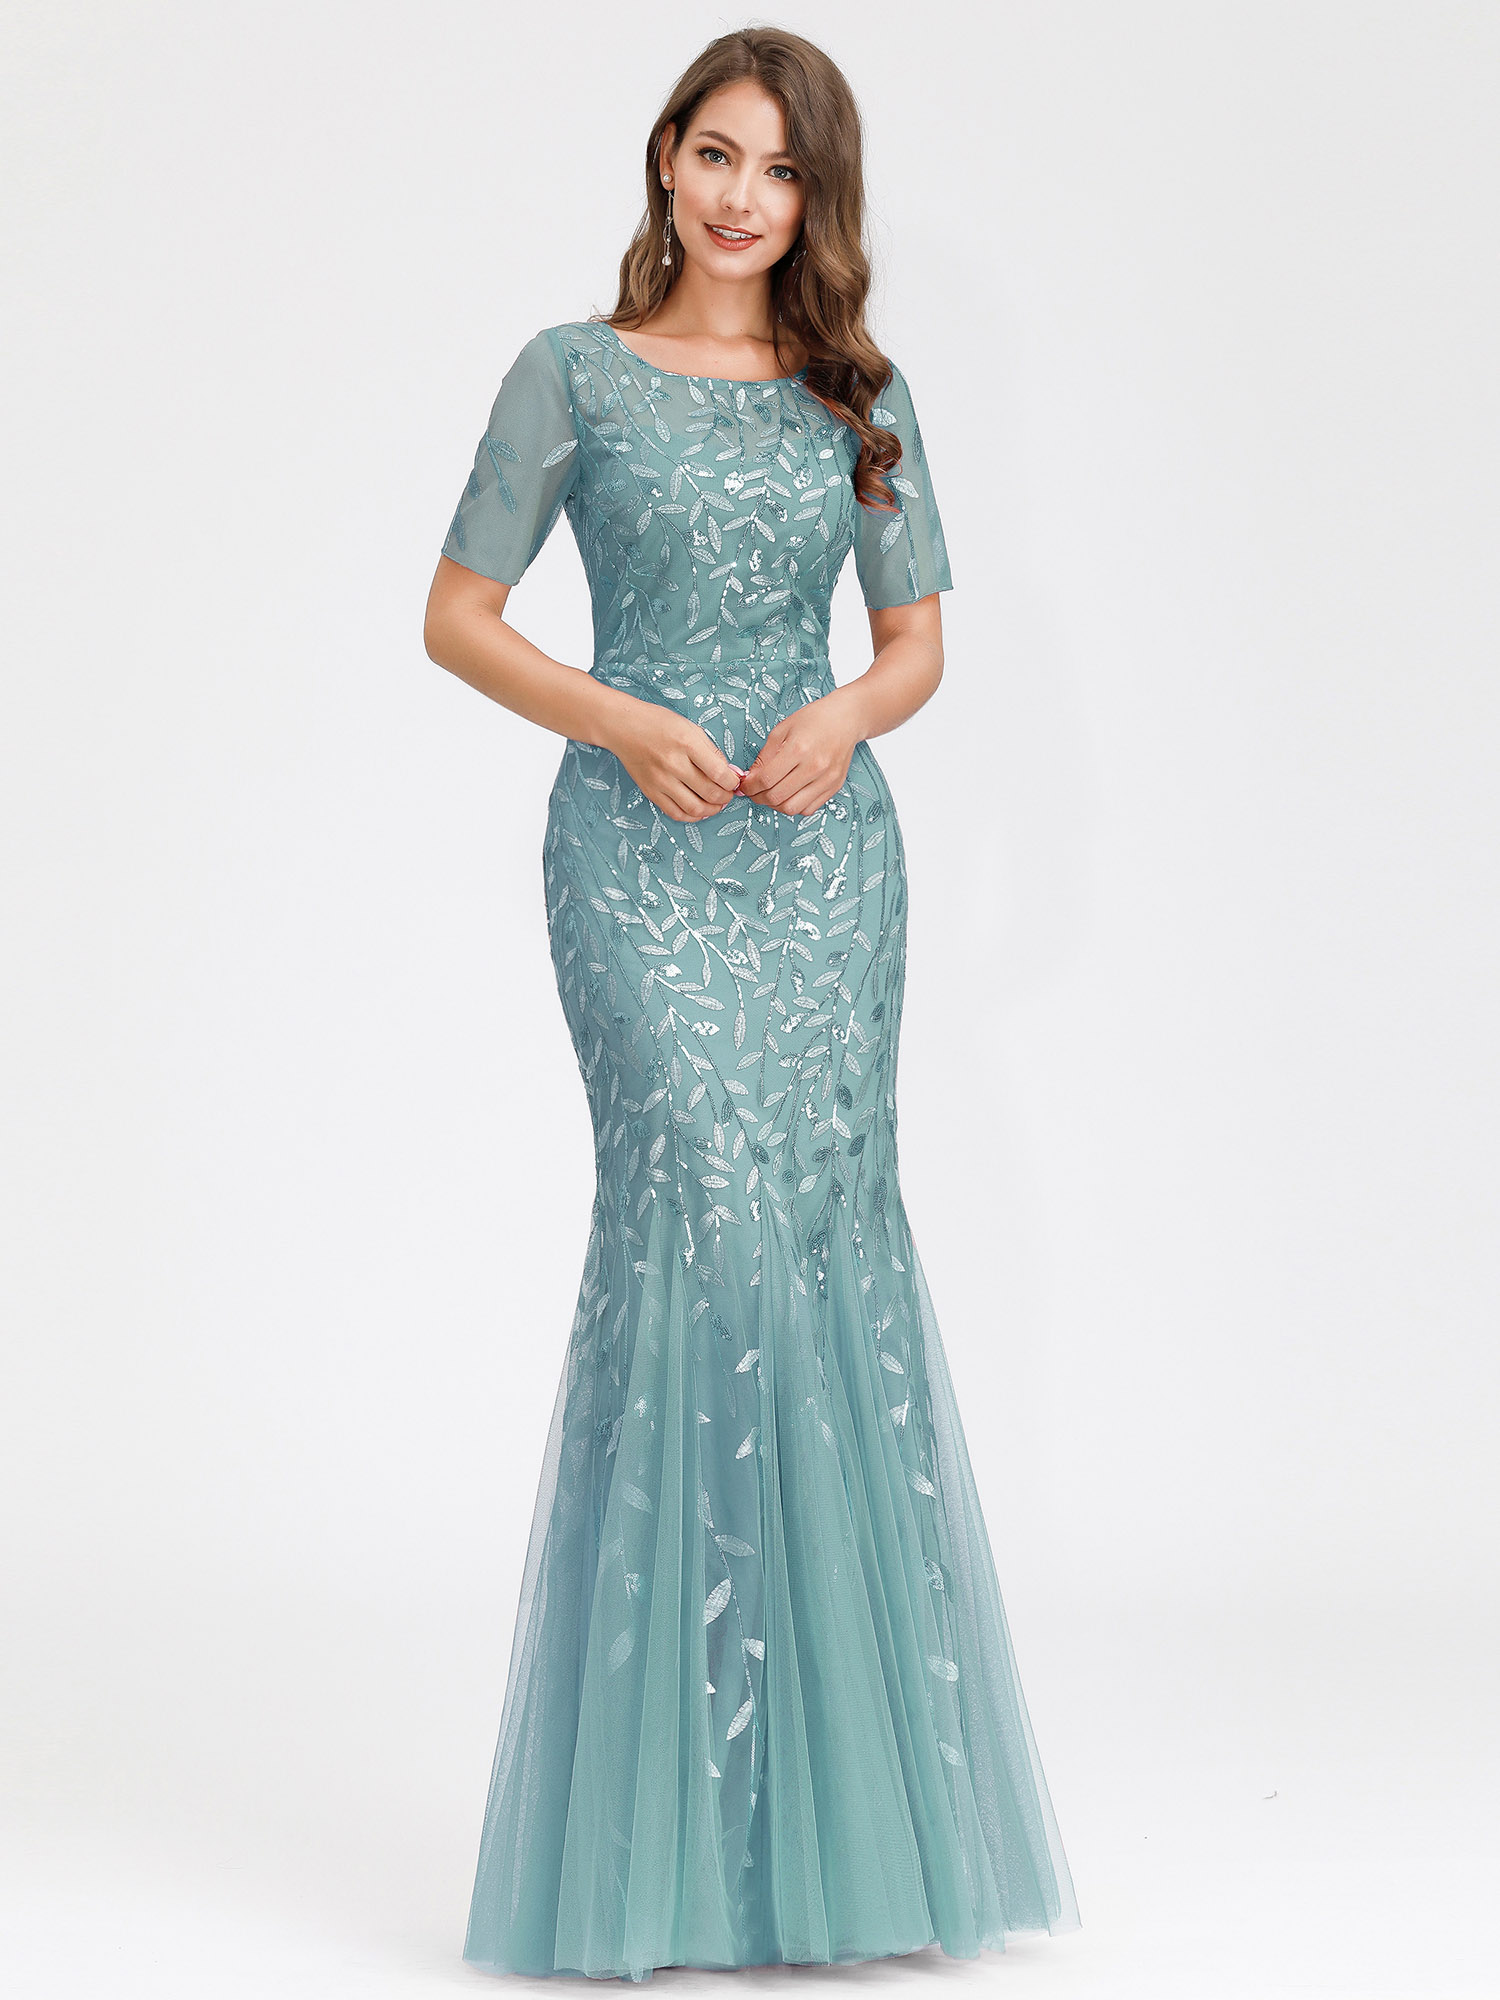 Ever-pretty-US-Mermaid-Evening-Party-Dresses-Formal-Cocktail-Celebrity-Prom-Gown thumbnail 7